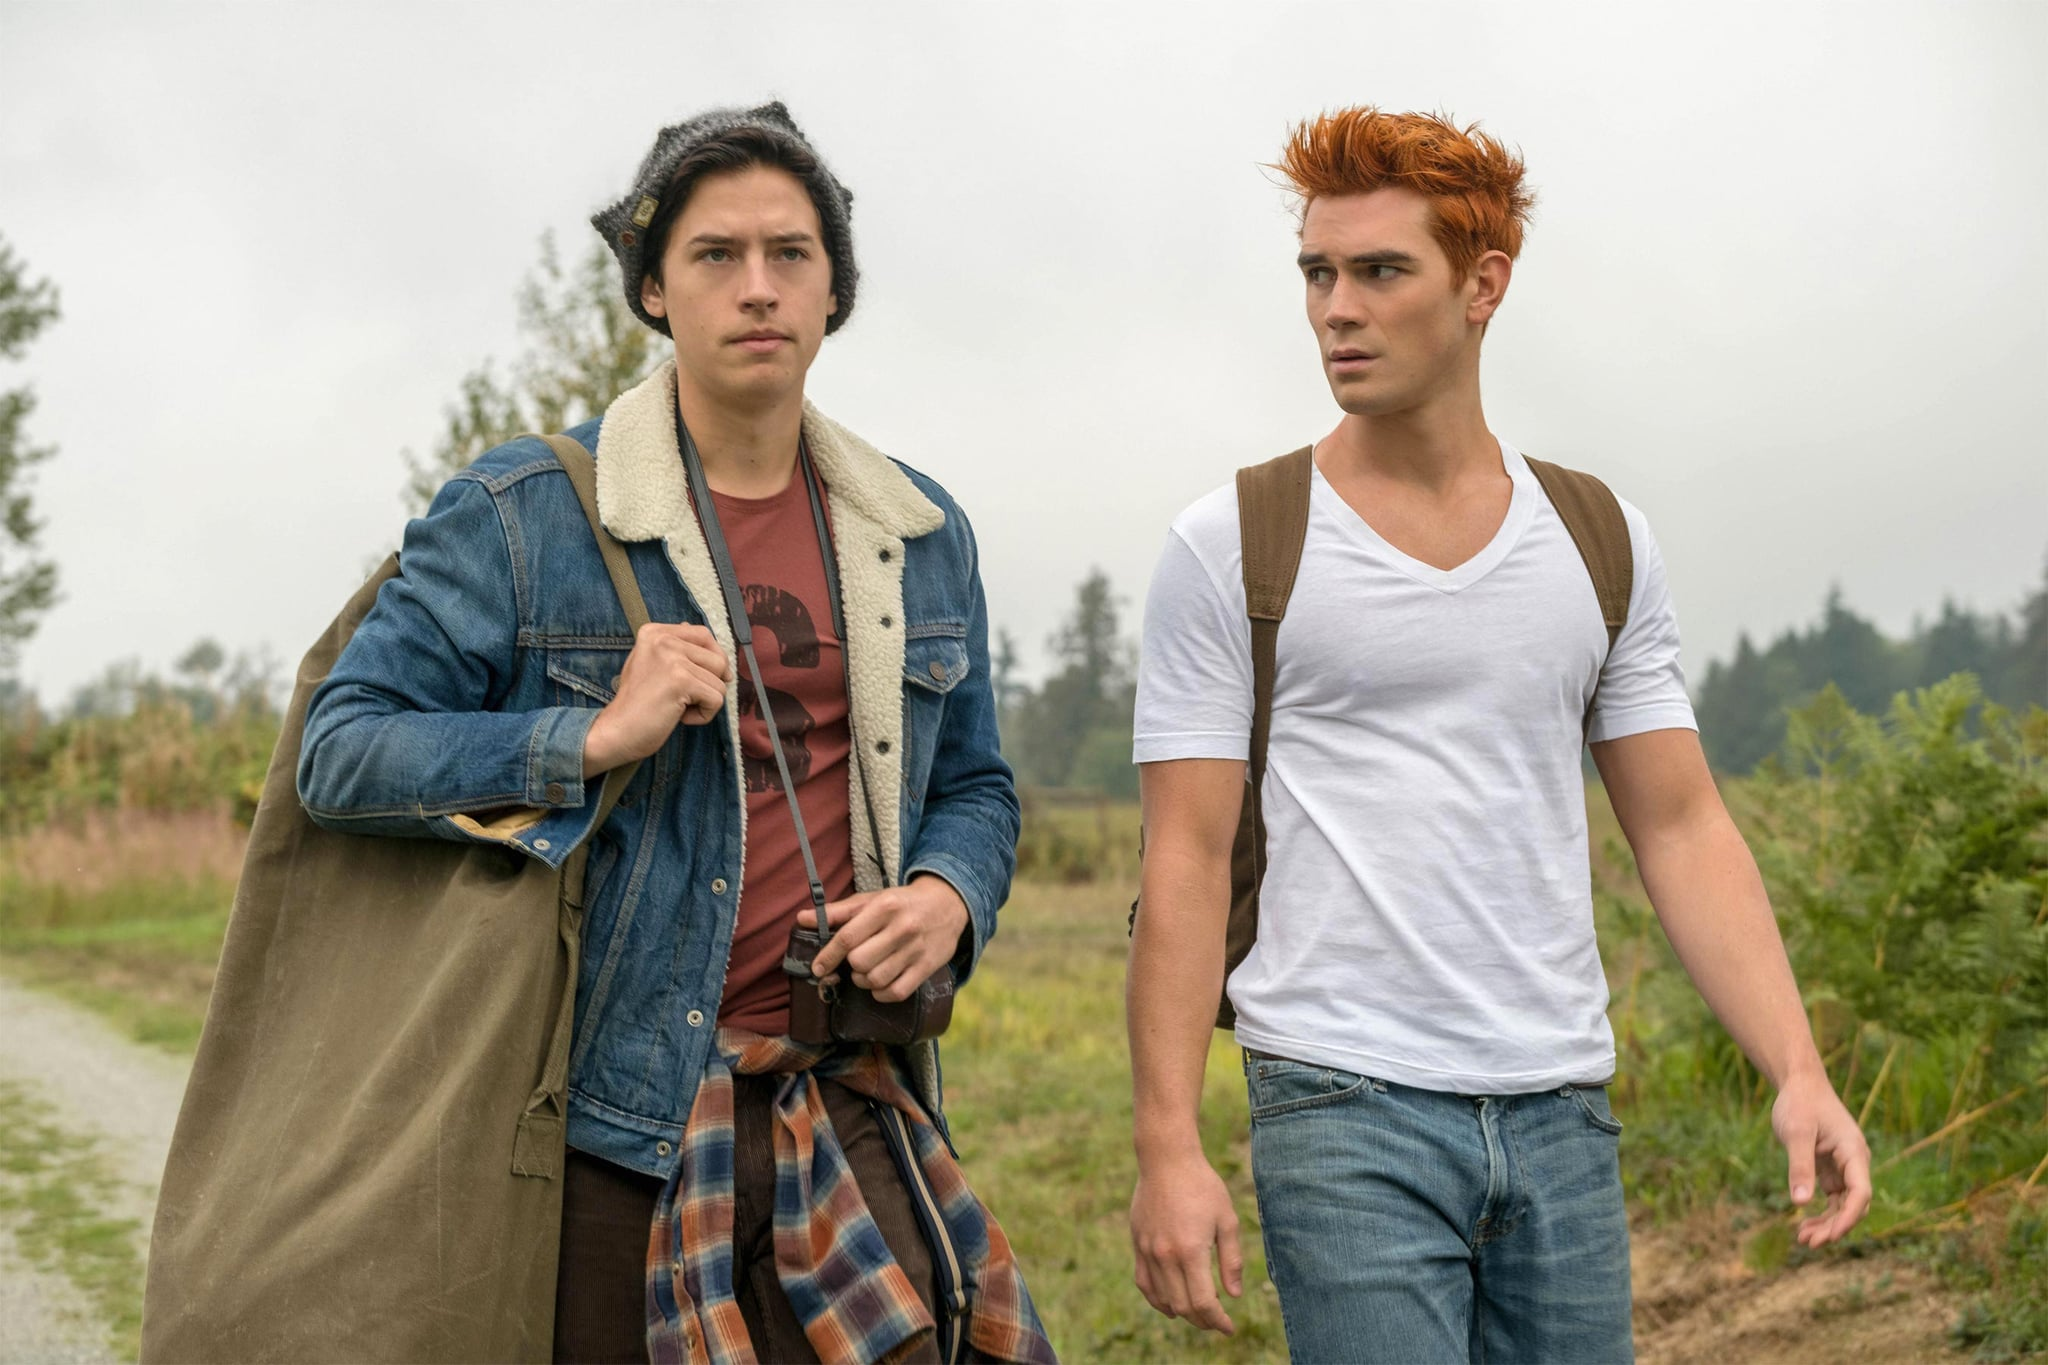 RIVERDALE, from left: Cole Sprouse, KJ Apa, 'Chapter Forty-Two: The Man in Black', (Season 3, ep. 307, aired Dec. 5, 2018). photo: Cate Cameron / The CW Network/courtesy Everett Collection